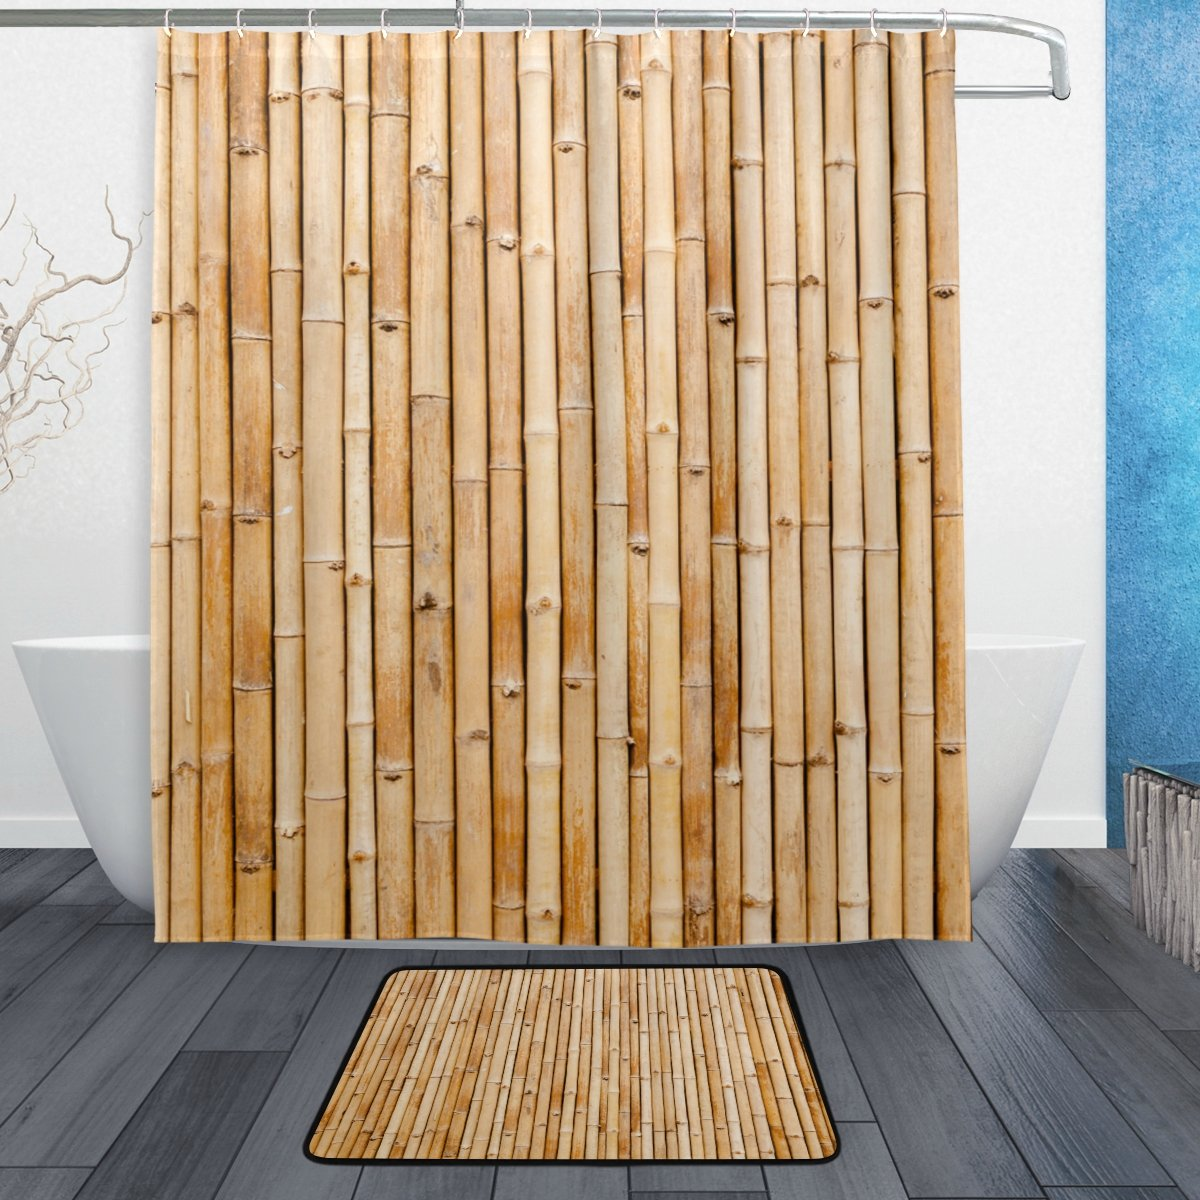 ALAZA Old Brown Tone Bamboo Plank Fence Shower Curtain Landscape Hipster Polyester Fabric Bathroom Curtain Set with Mats Rugs-12 Hooks